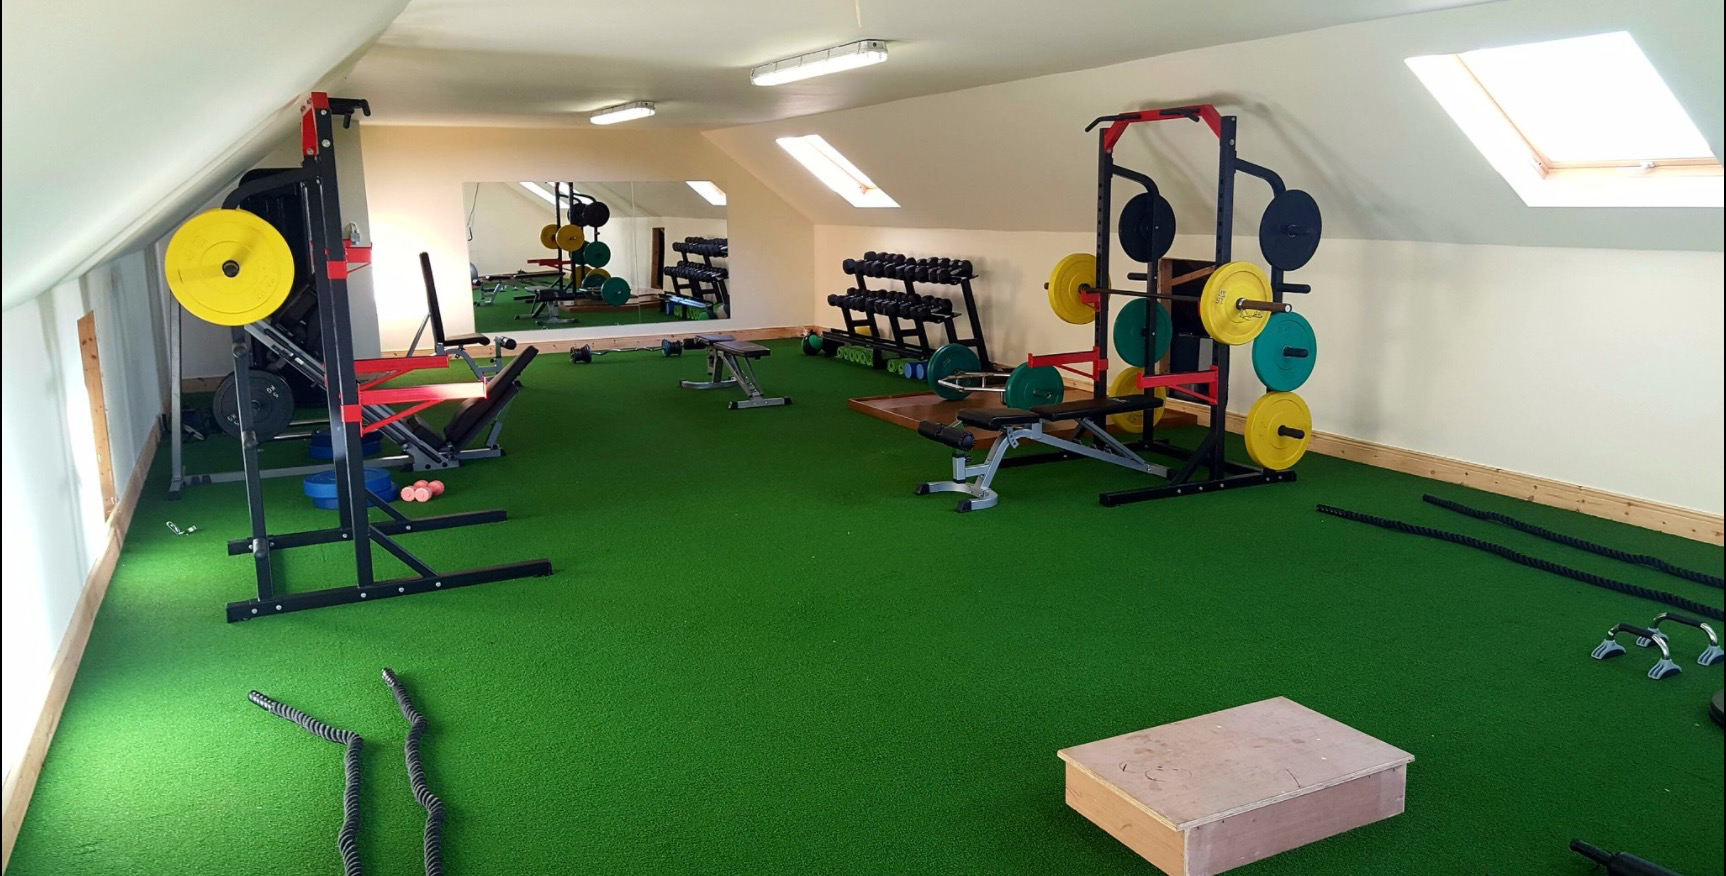 Gym installations fitness equipment ireland best for buying gym